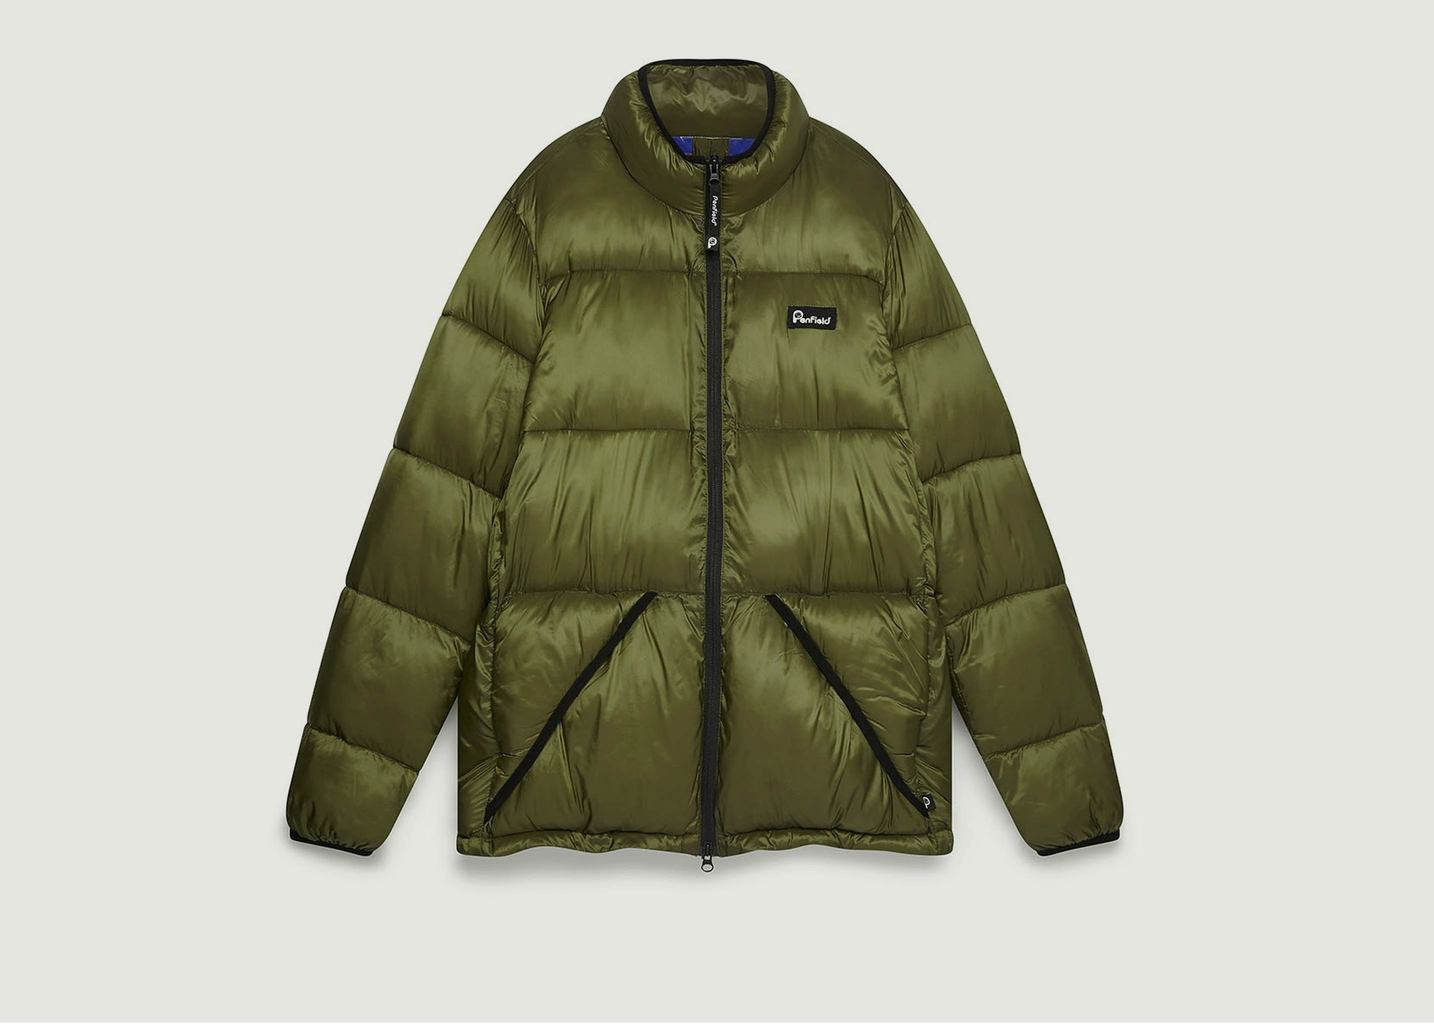 Doudoune Walkabout Olive - Penfield